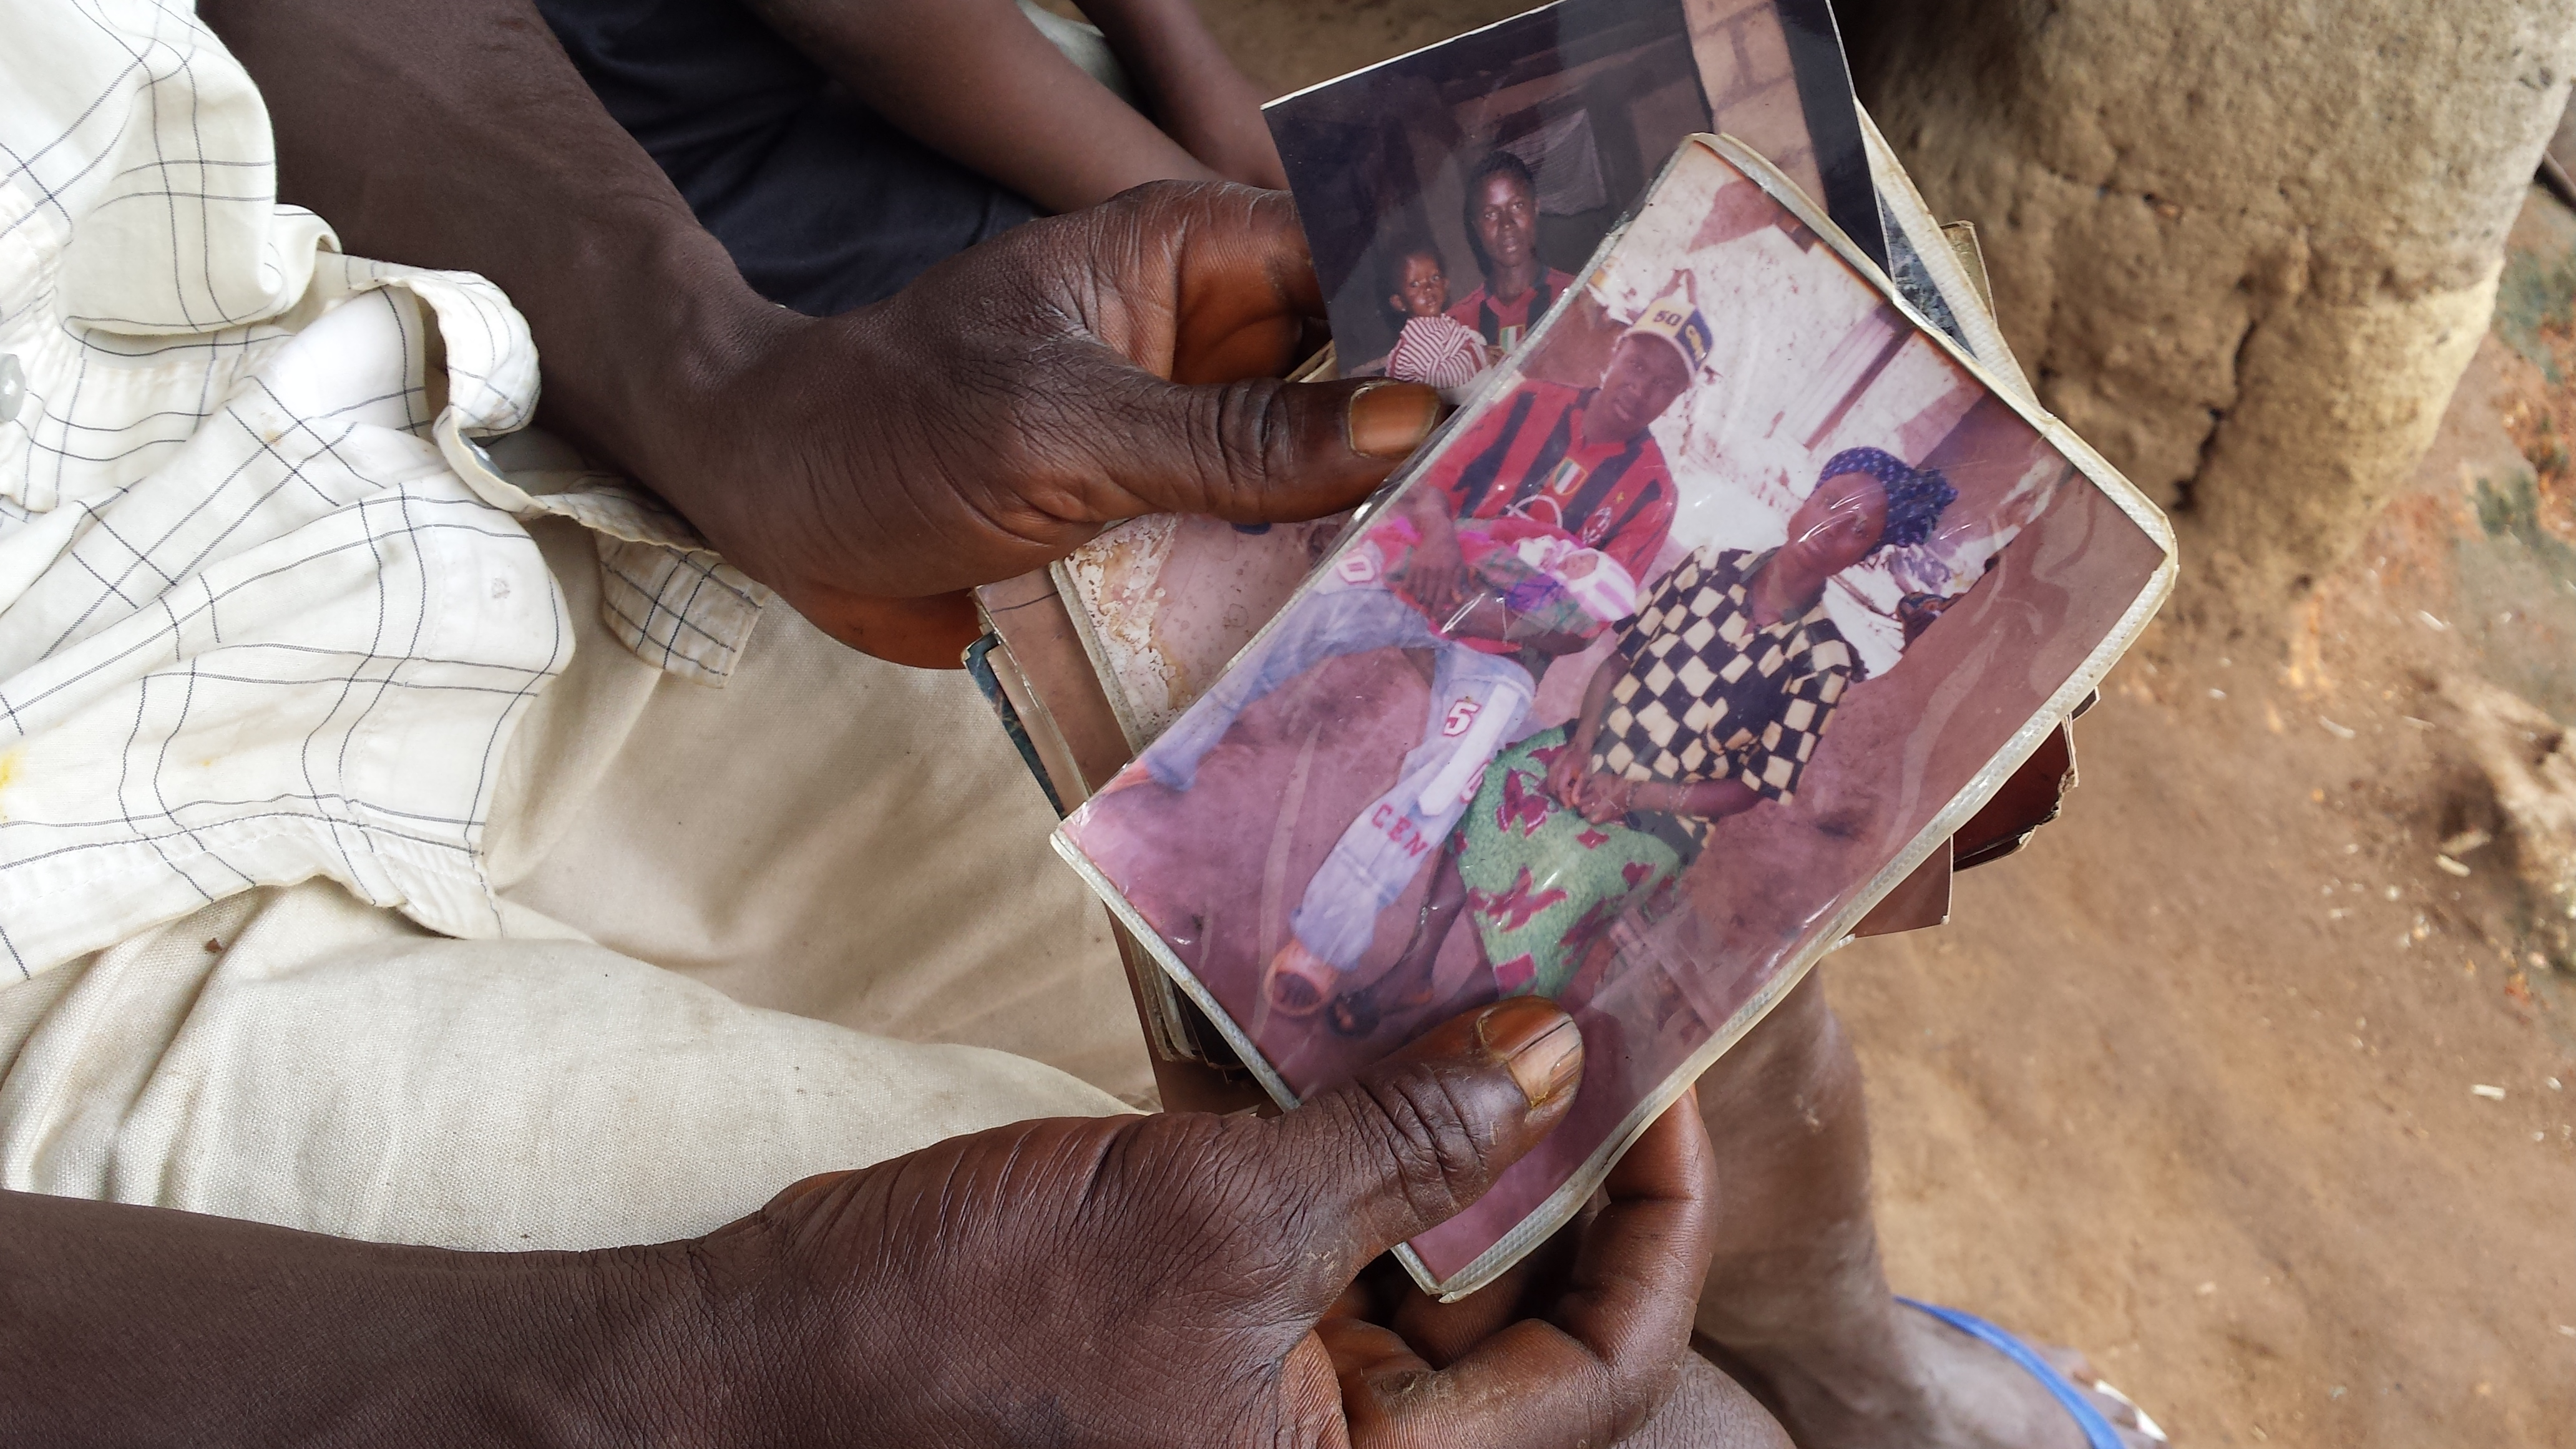 A family photograph of a new-born Emile, known as patient zero and his mother and father. Emile, his older sister Philomne, and his mother all died after contracting Ebola.